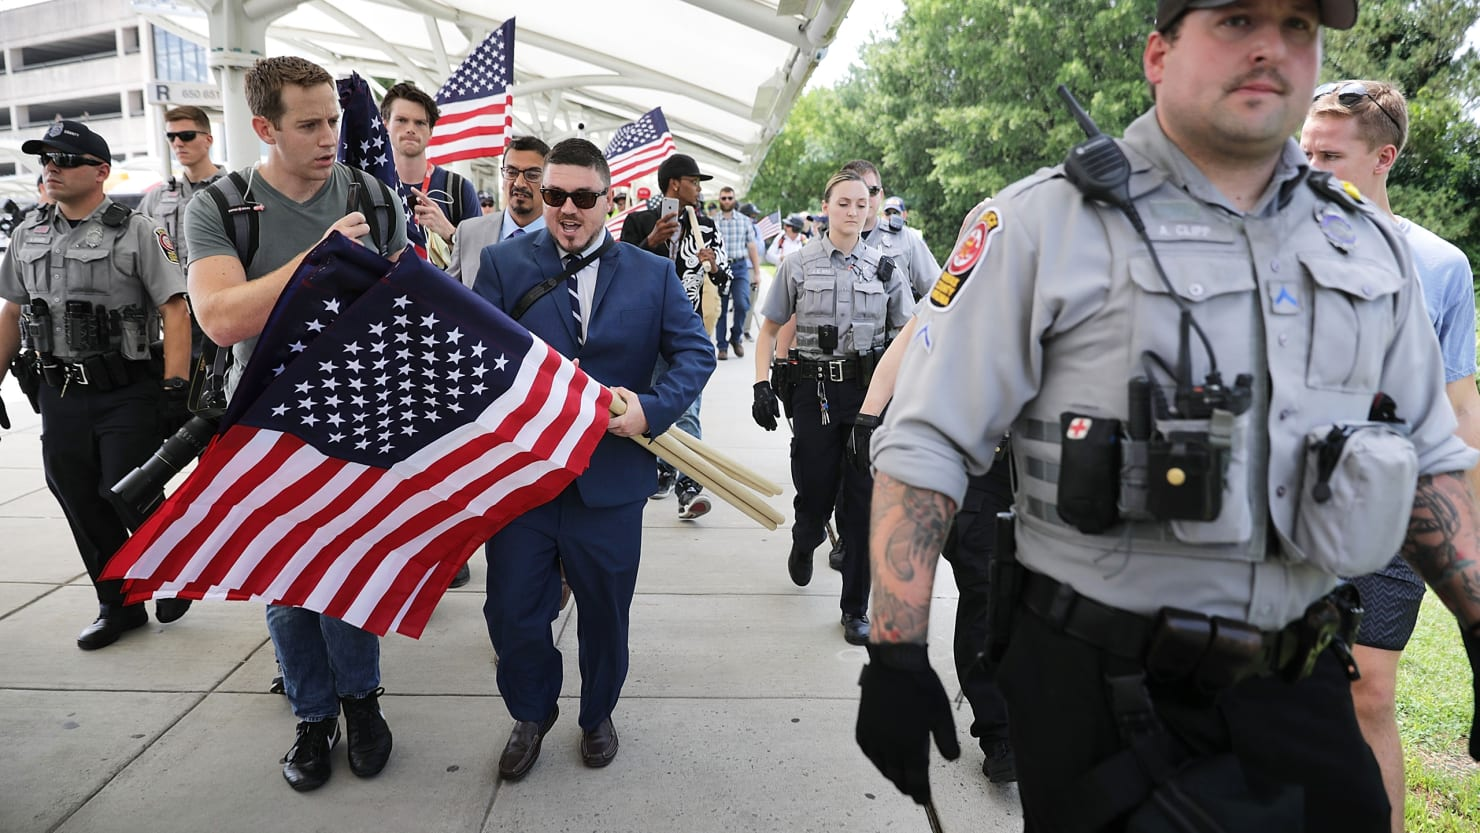 Surrounded by thousands of protesters, White nationalists slither home